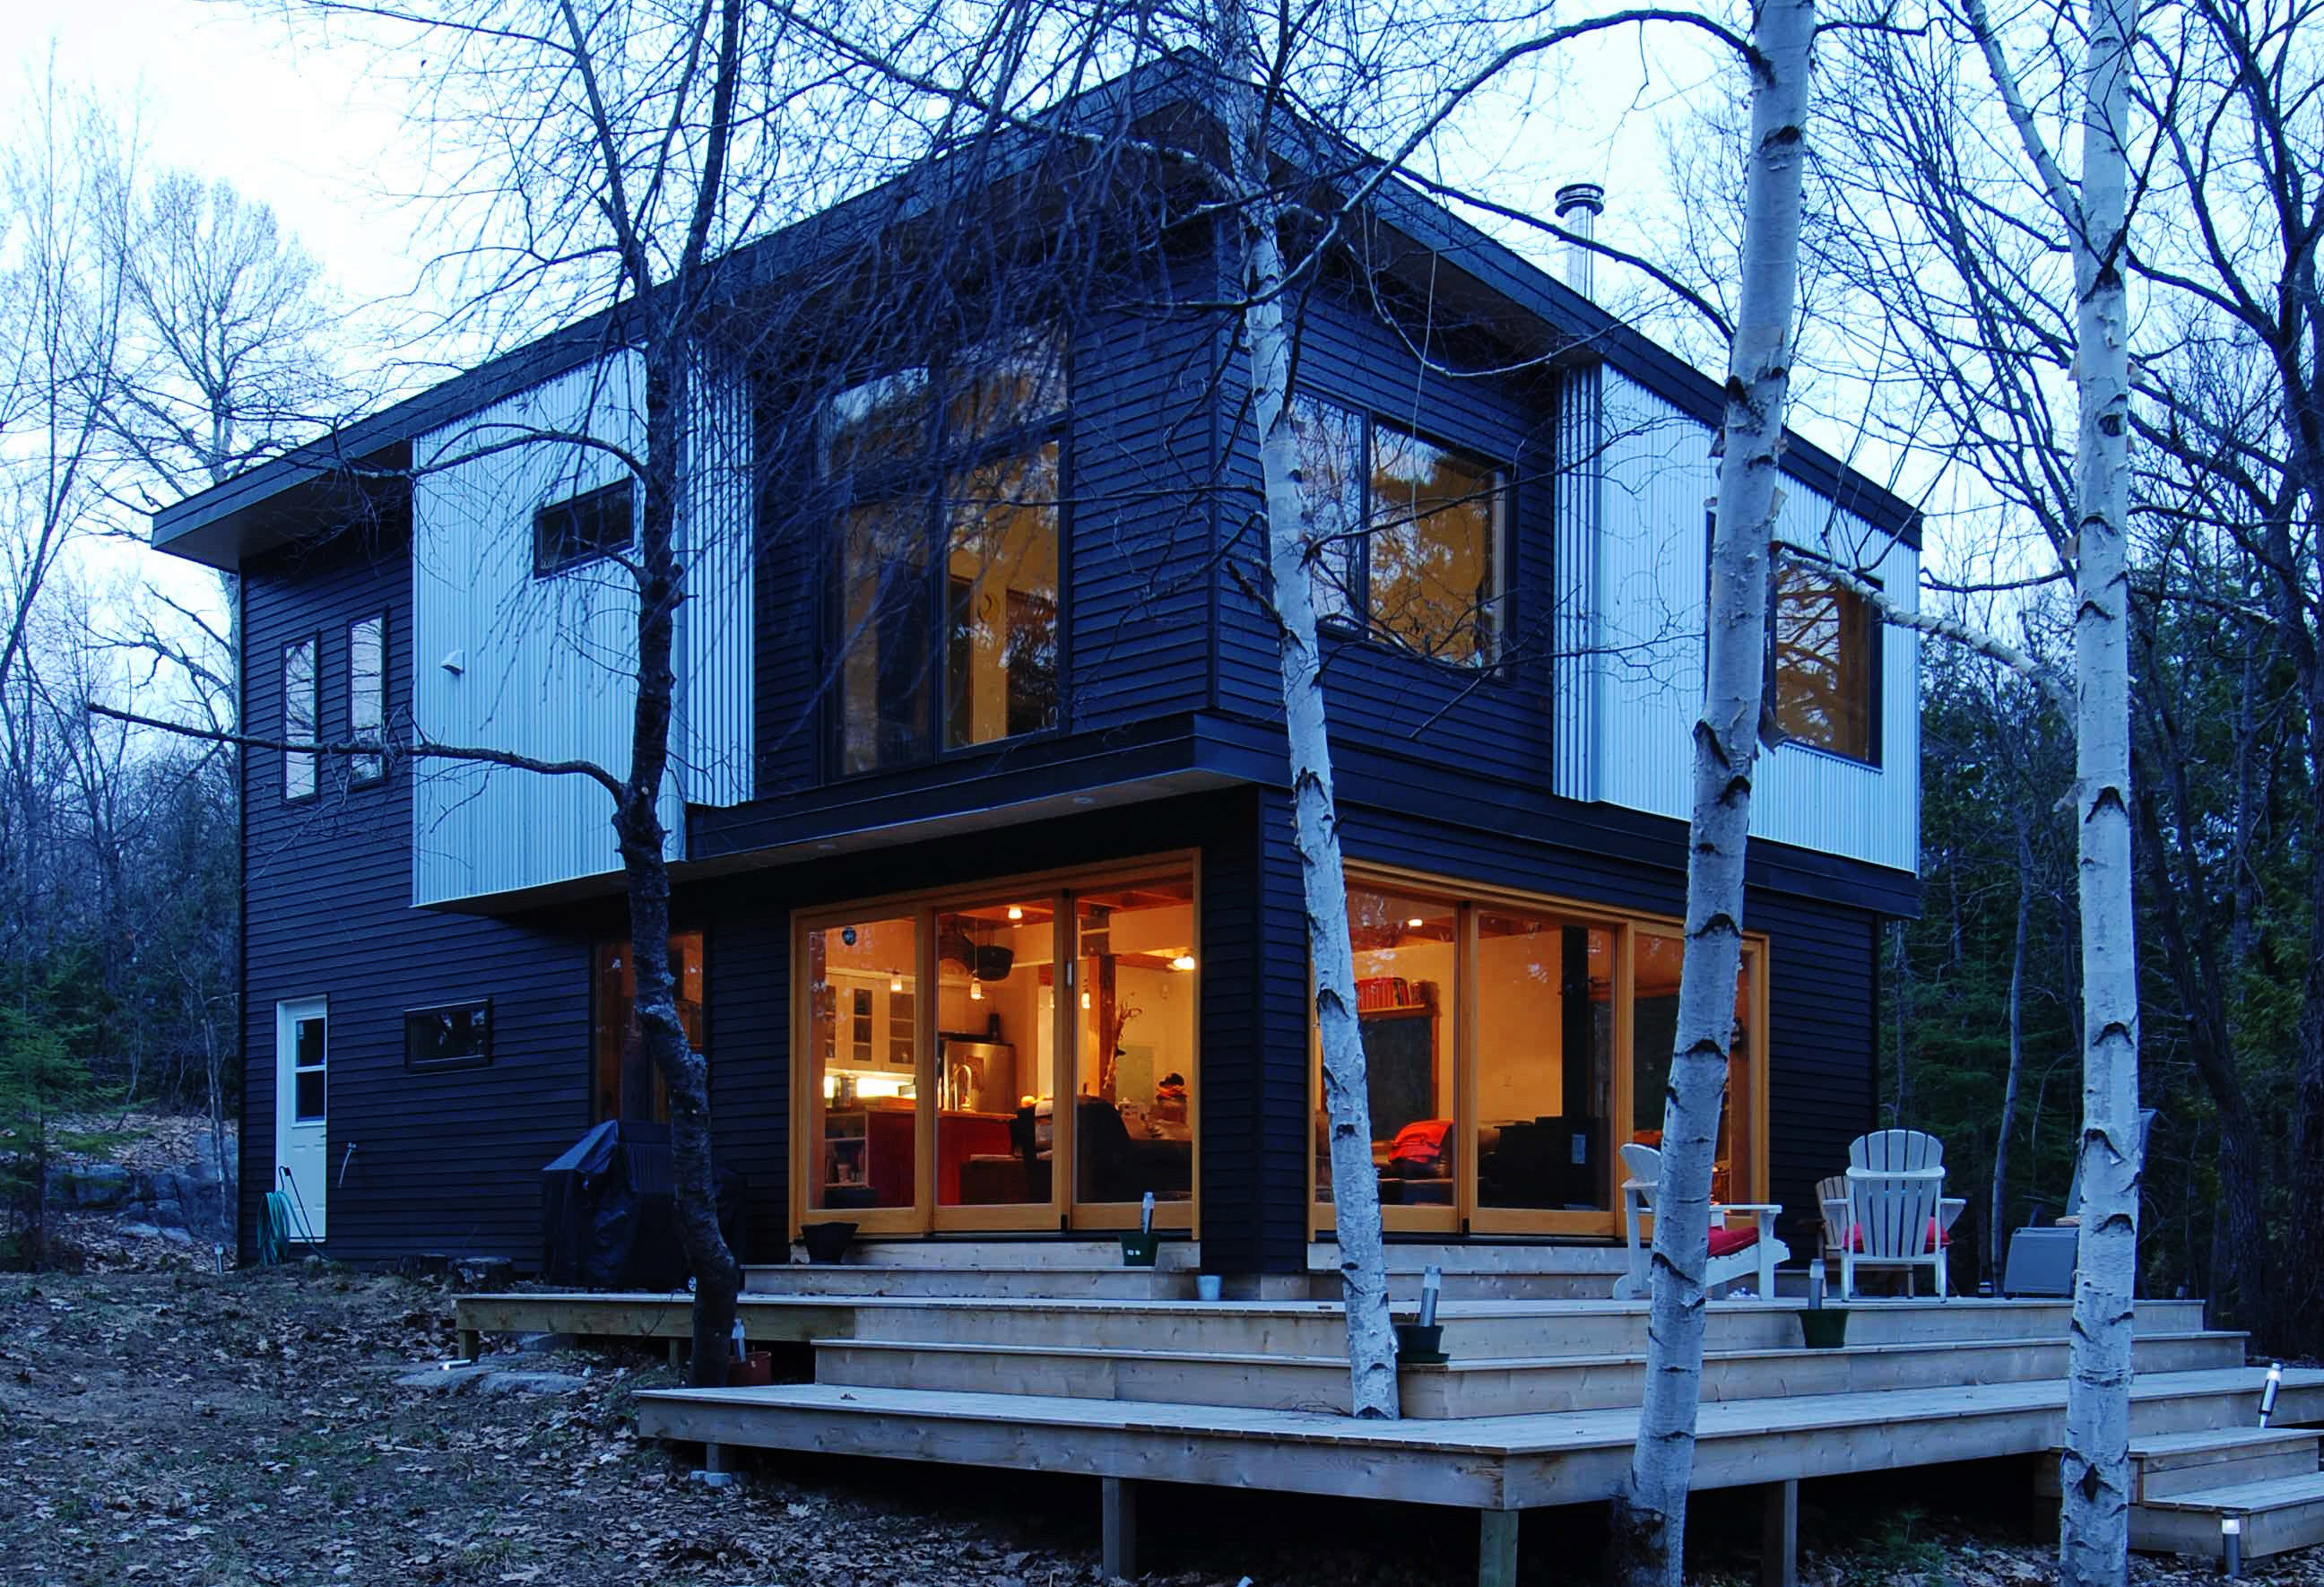 Eastern Ontario cottage with tiered deck designed around existing trees and vegetation